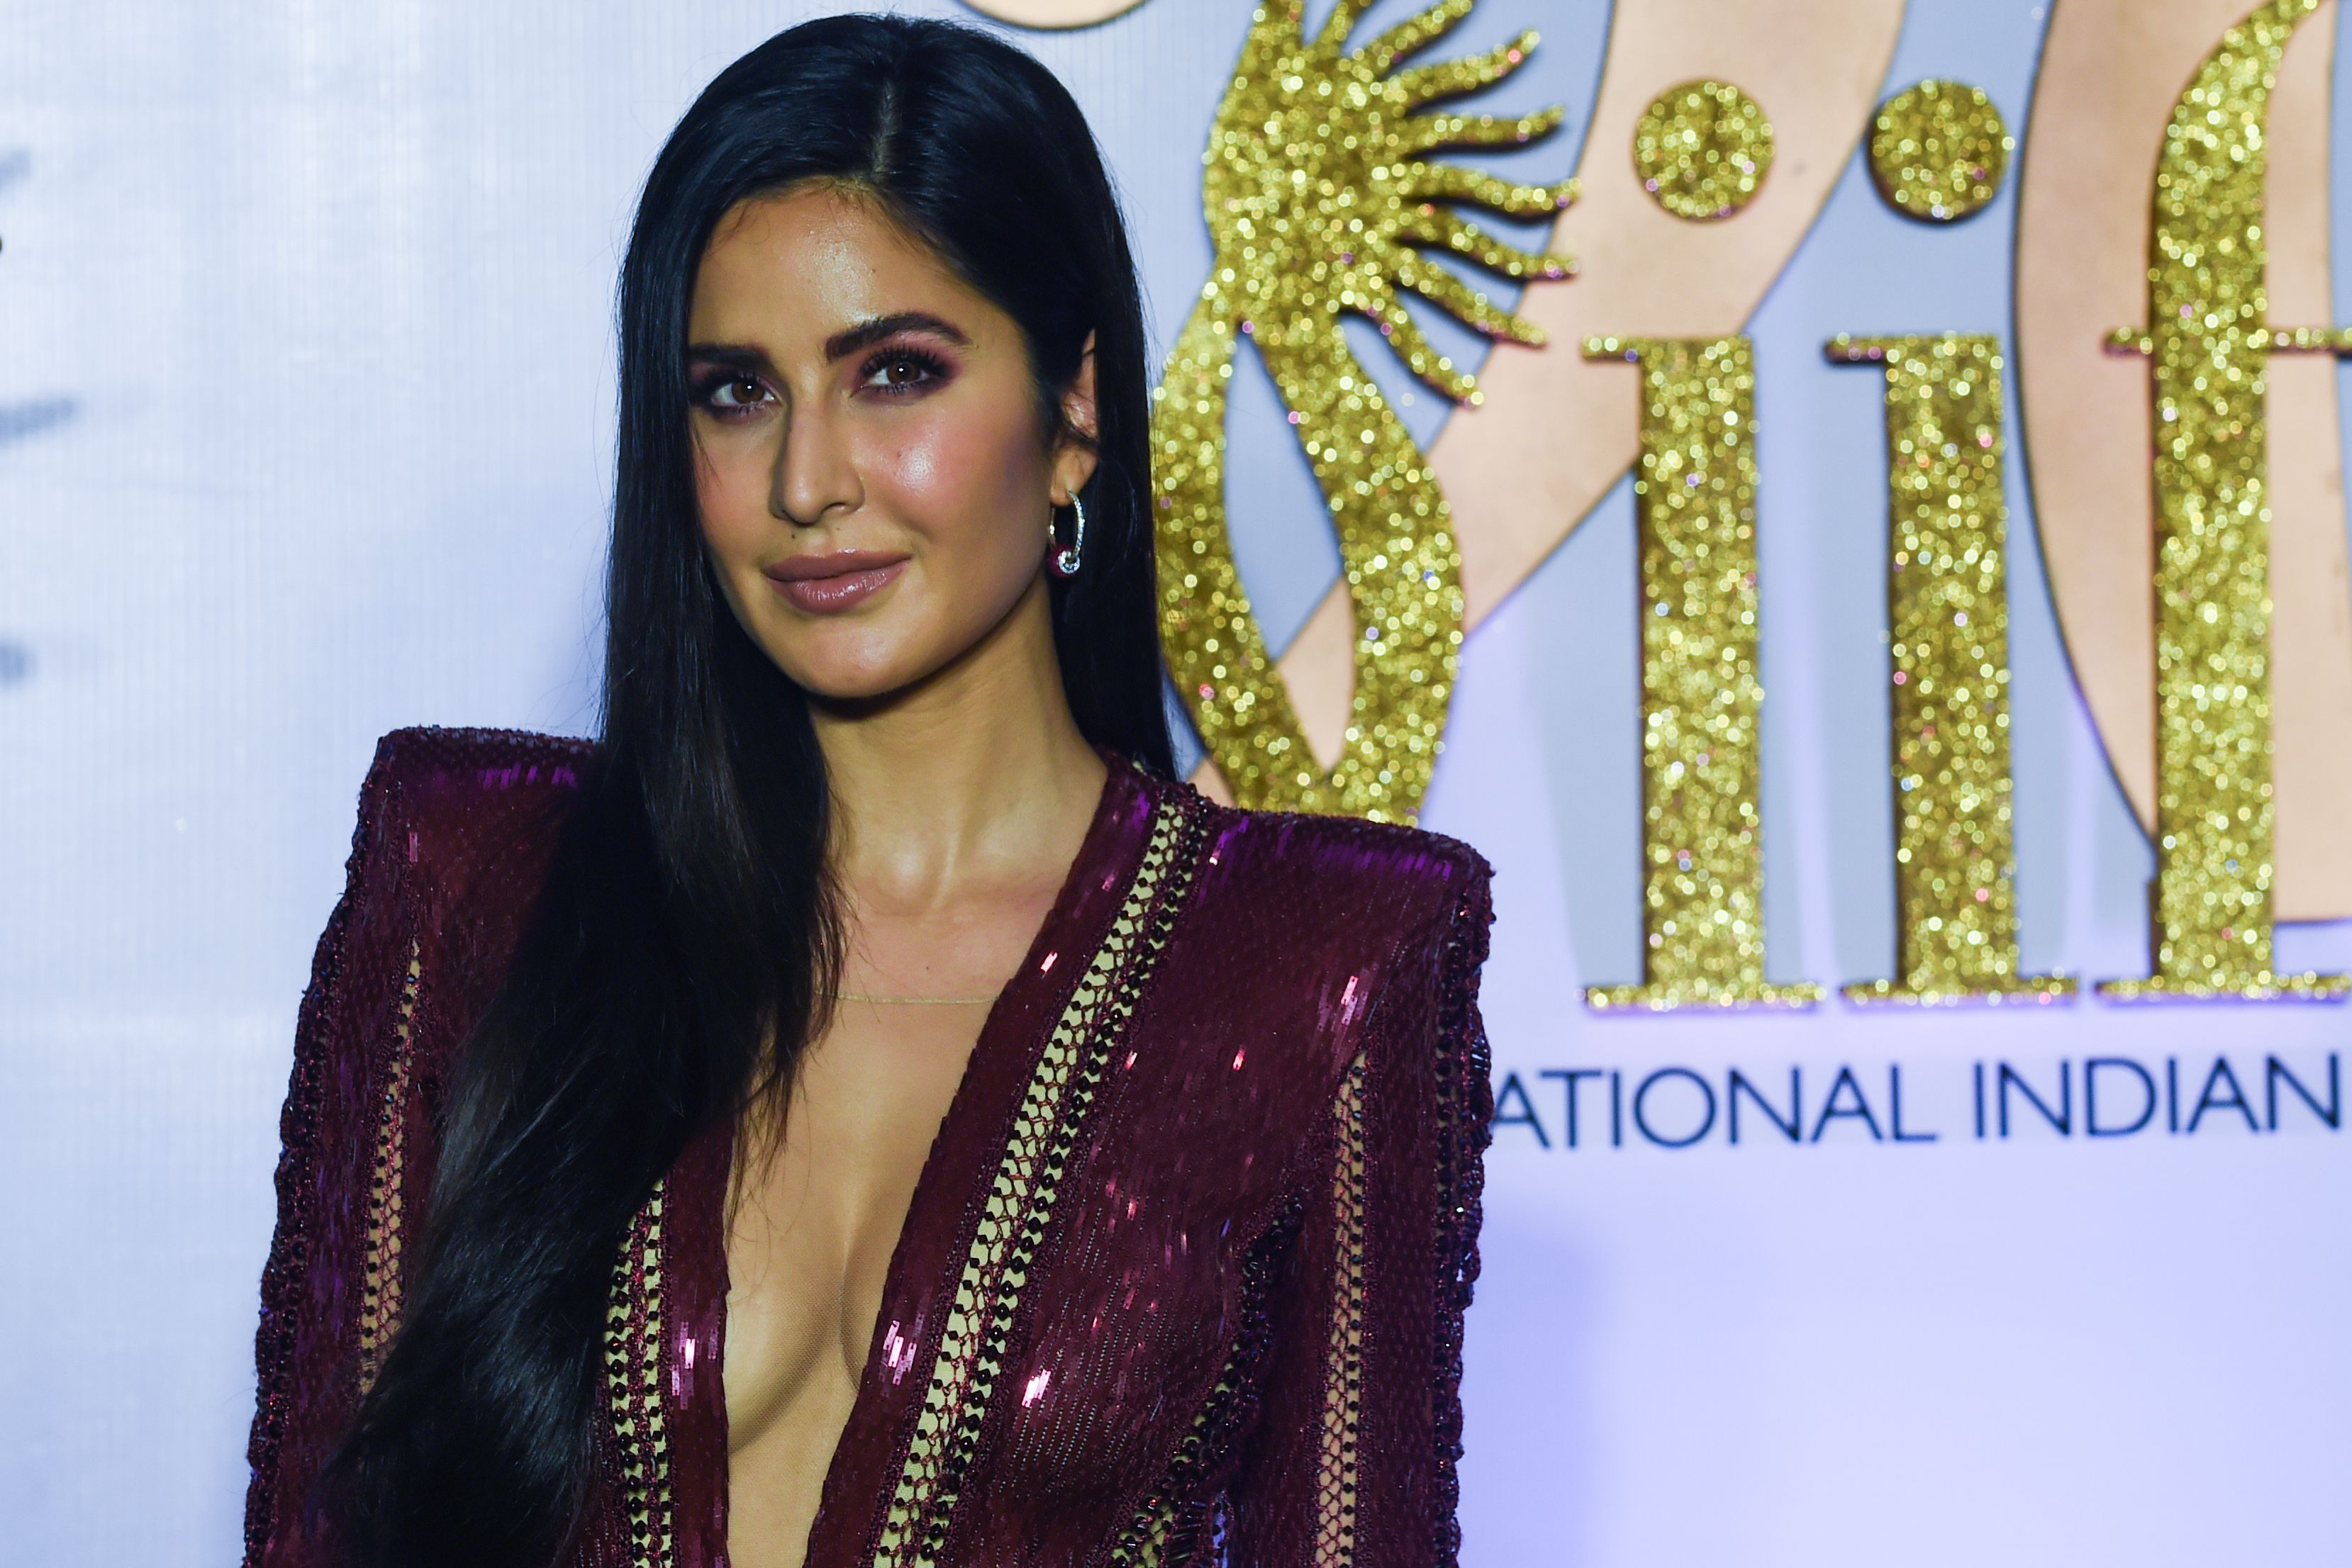 Katrina Kaif would have been a star attraction at the IIFA Awards. (Photo by INDRANIL MUKHERJEE / AFP)